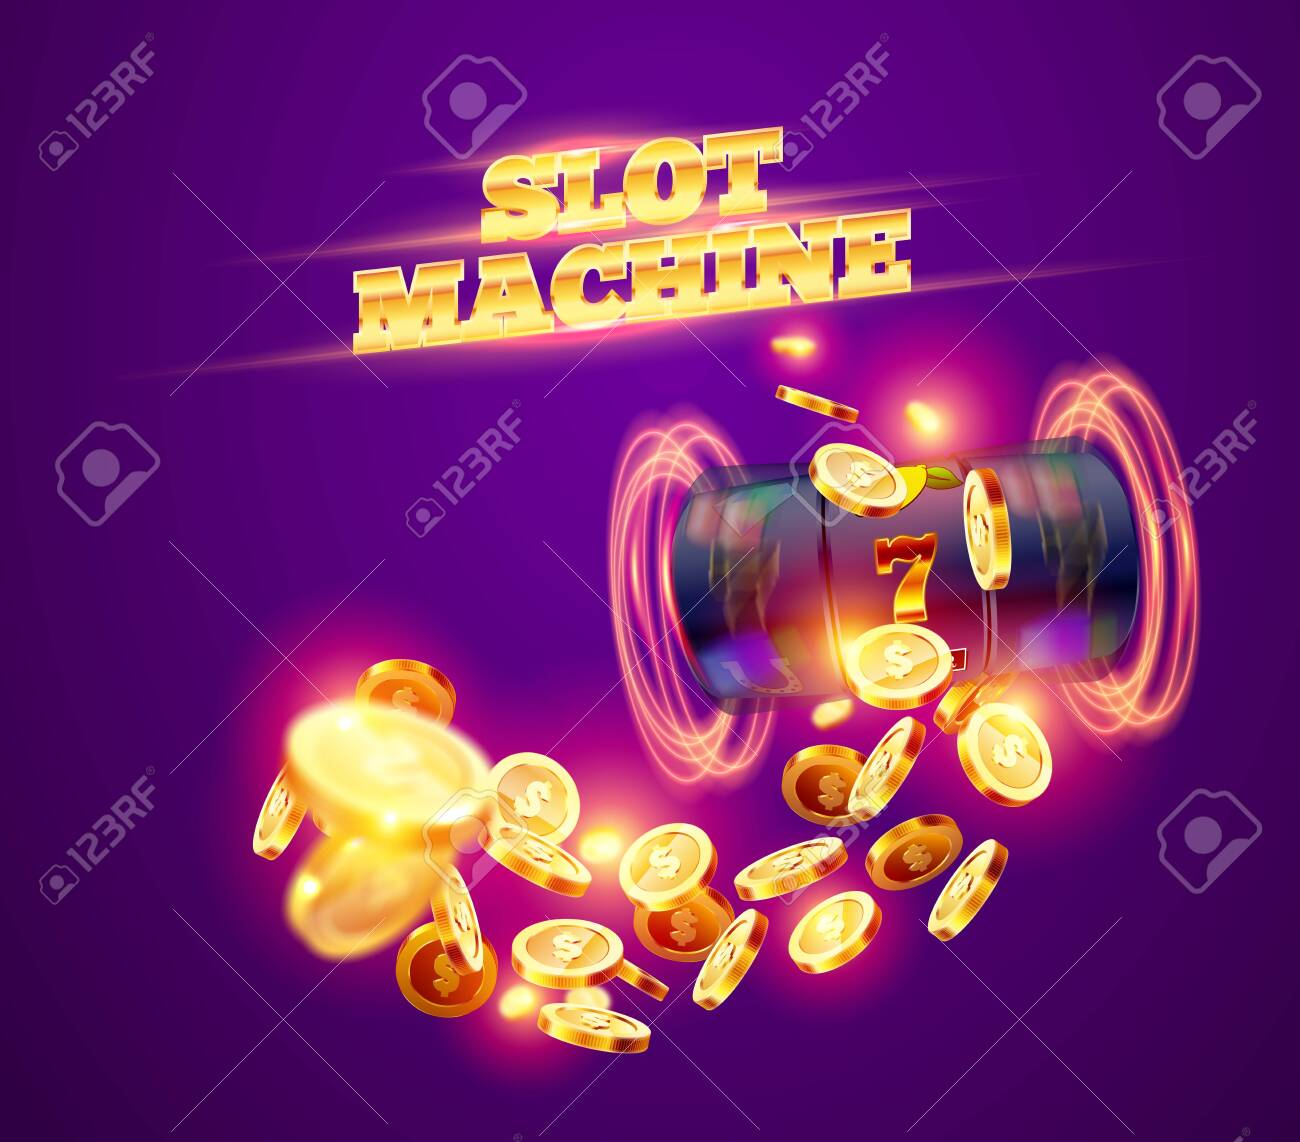 The black slot machine wins the jackpot 777 on the background of an explosion of coins. Vector illustration - 146845968